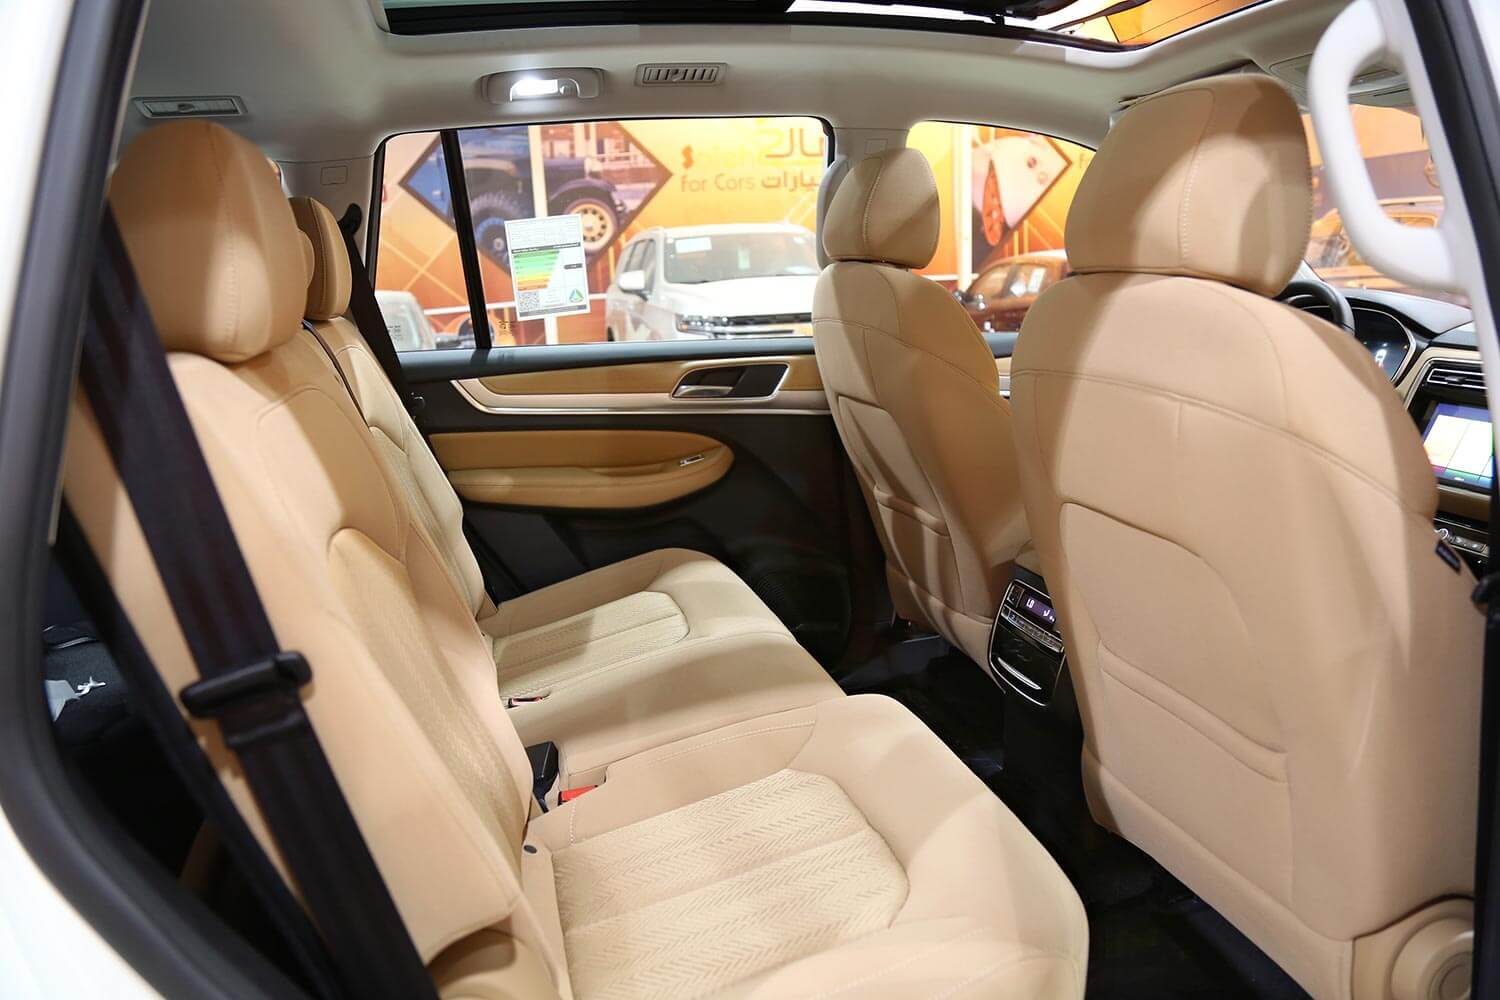 Interior Image for  MG RX8 COM 2021